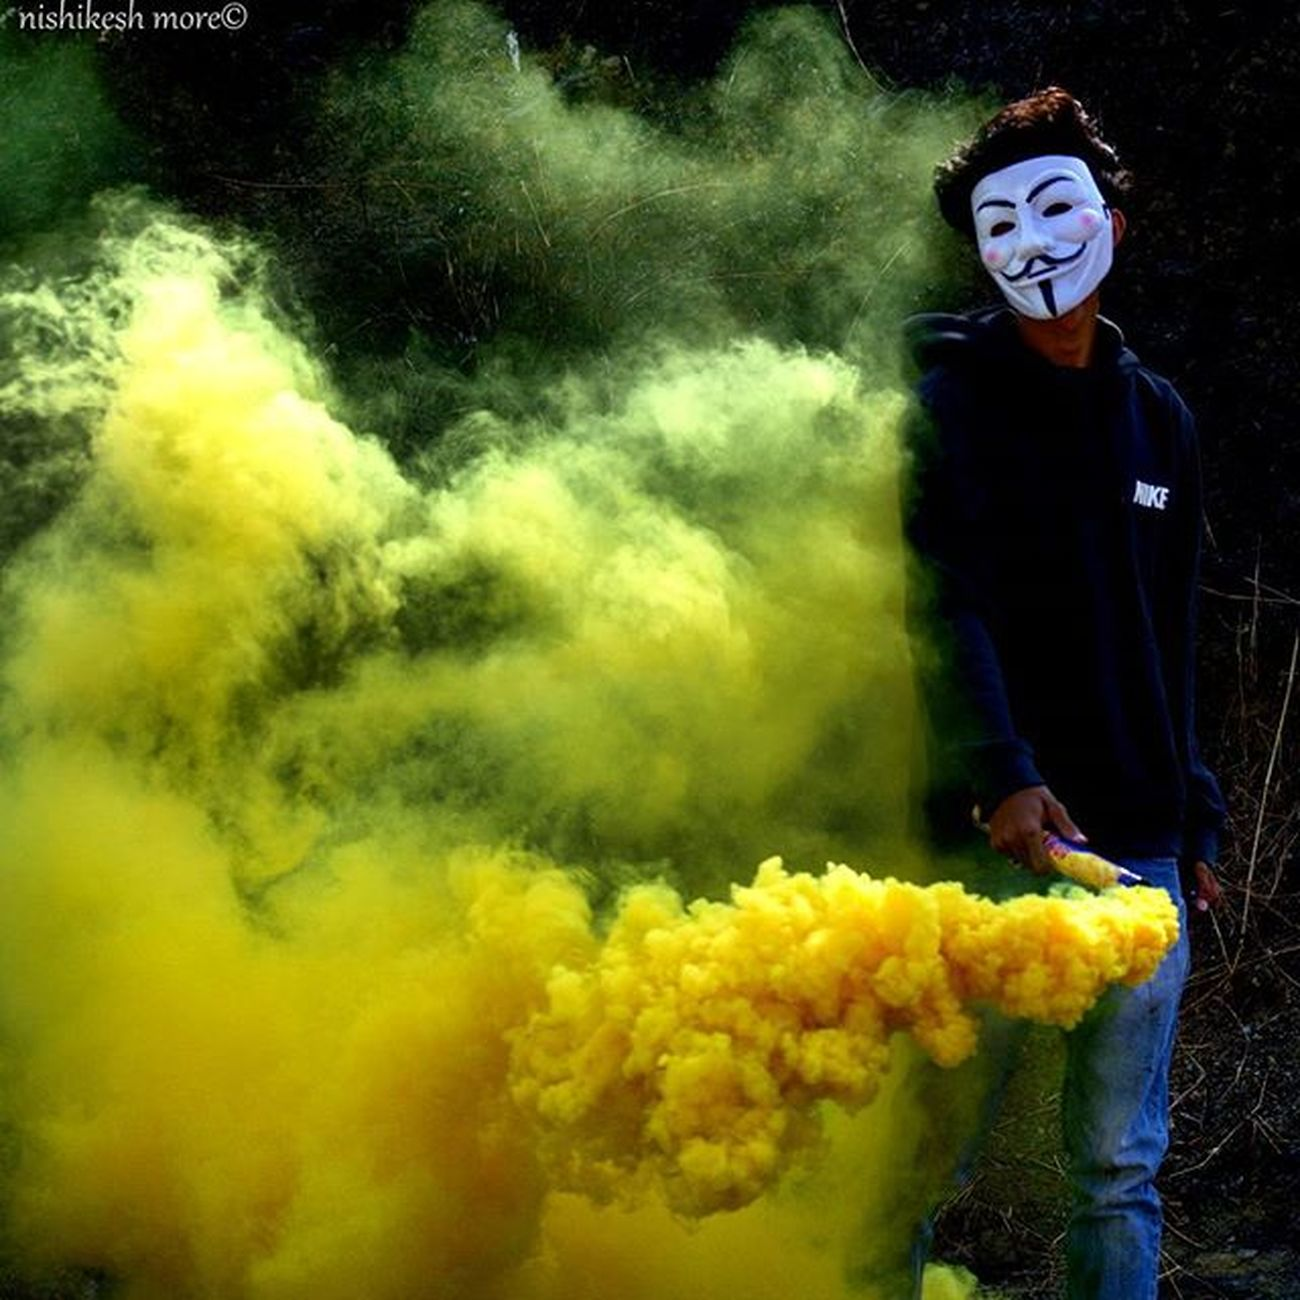 Last one from the smoke bombing series..!! 6 Smoke Smokebombphotography Smoke Smokeyeye Yellow Anonymous Abstract Abstracters_anonymous Colours Photography Photographers_of_india _worldsnaps Indiasb India_ig Maharashtra_ig Mumbai_uncensored Instalike Instafollow